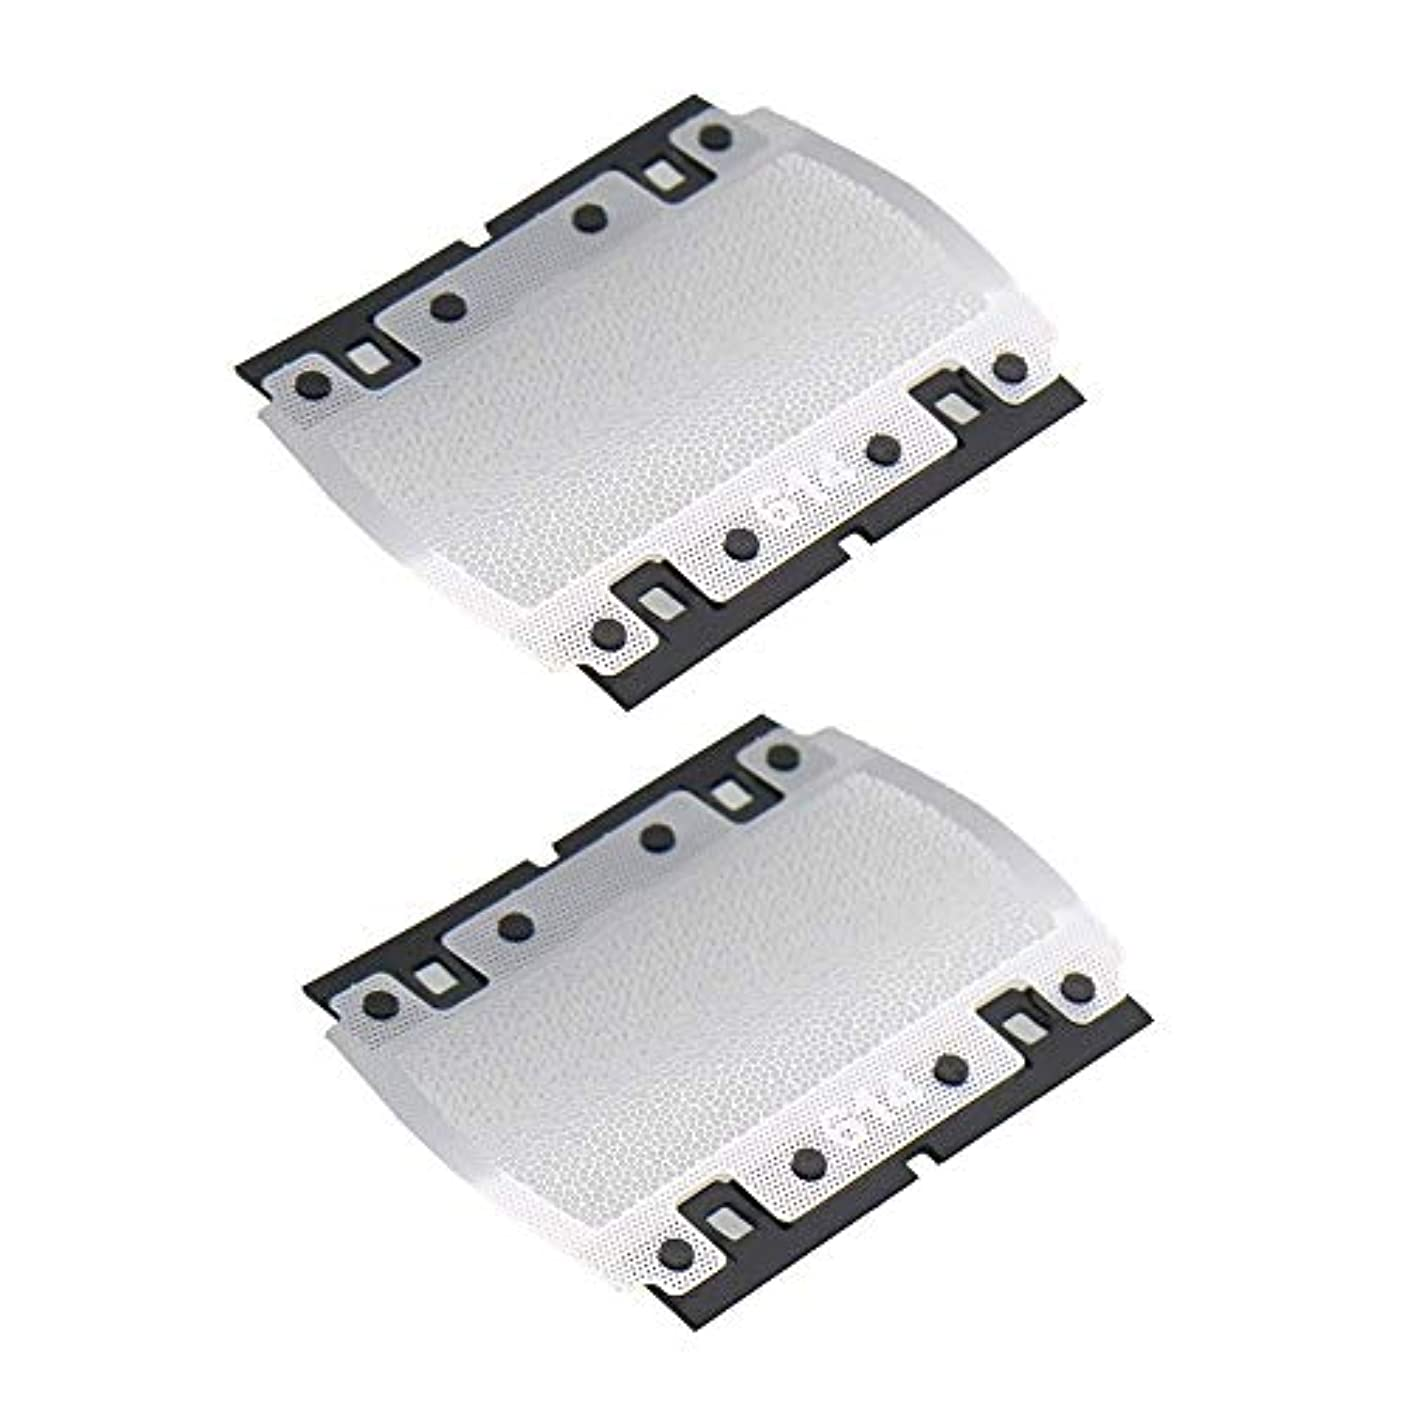 VWONST 614 Shaver Foil Screen For Braun PocketGo Pocket Twist E-Razor 614 350 355 370 375 5614 5615 P10 Shaver...